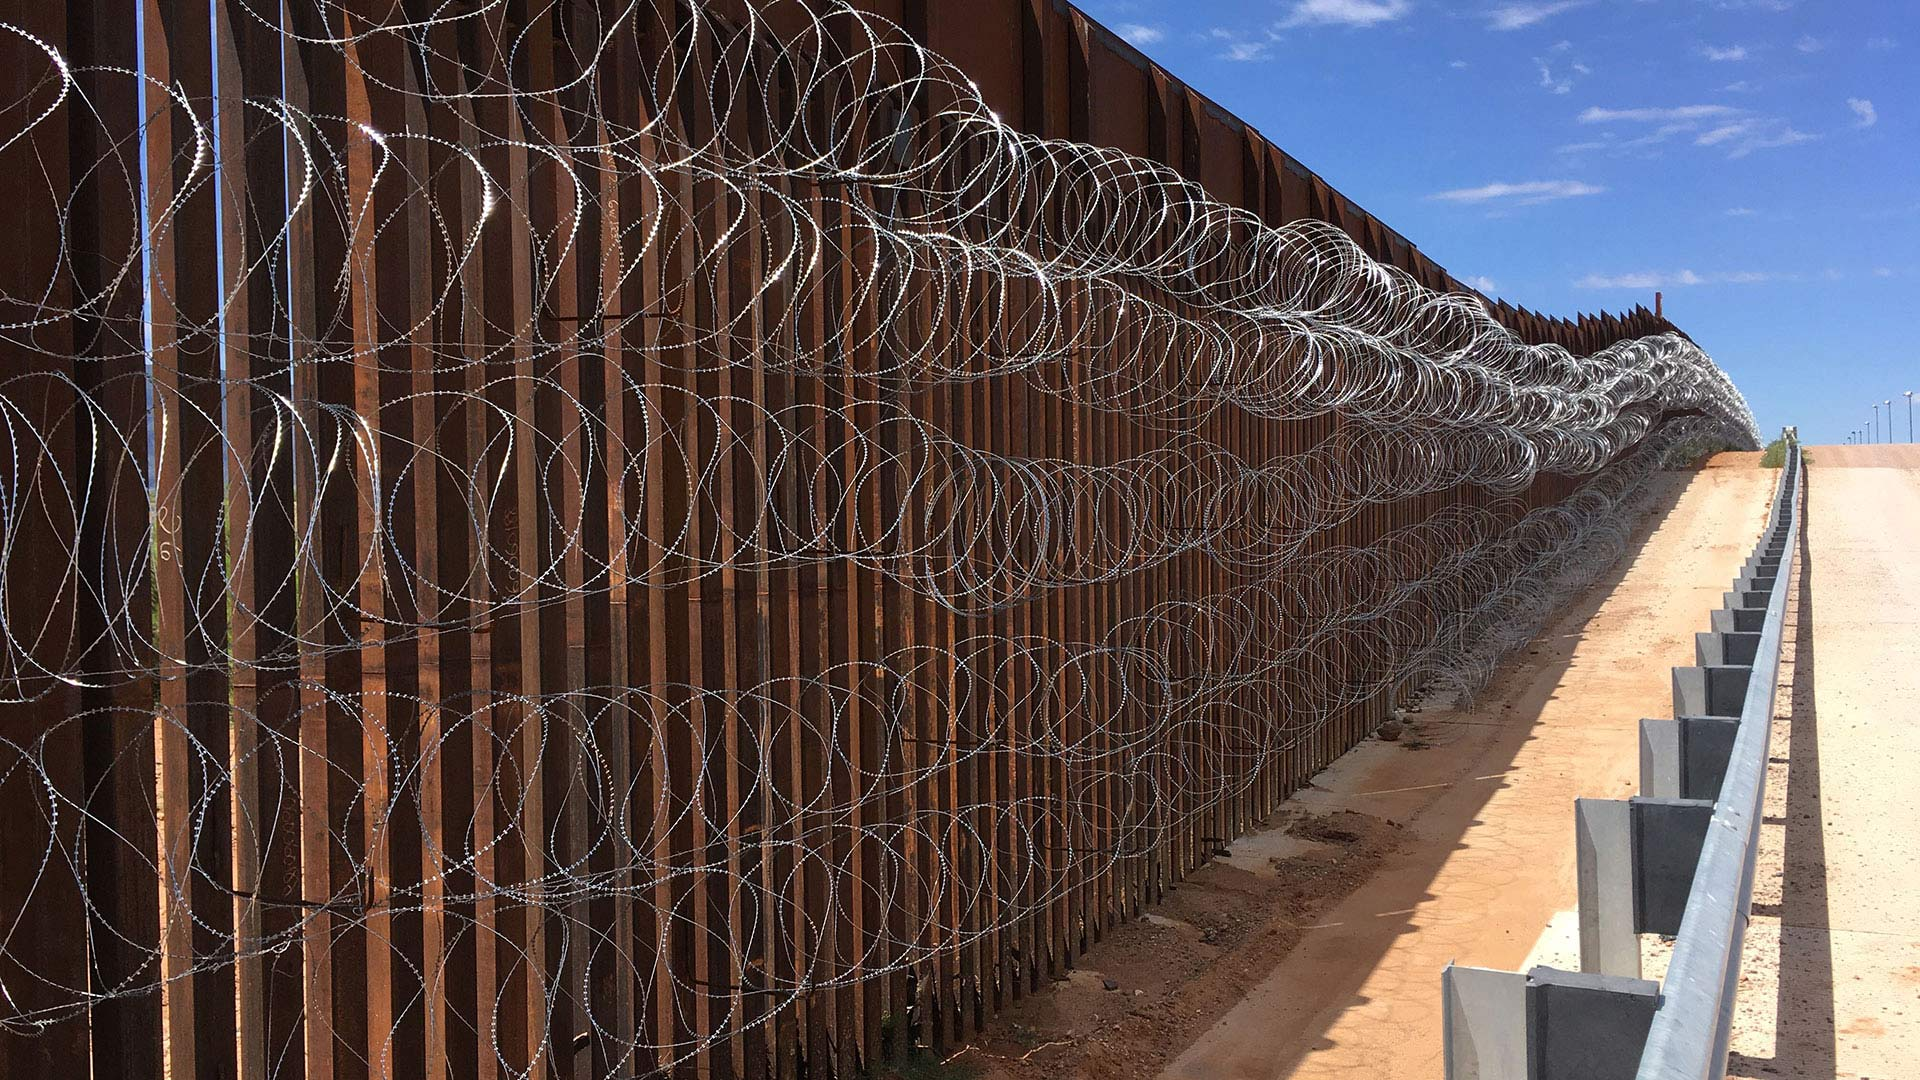 Existing bollard-style fencing along the U.S.-Mexico border.